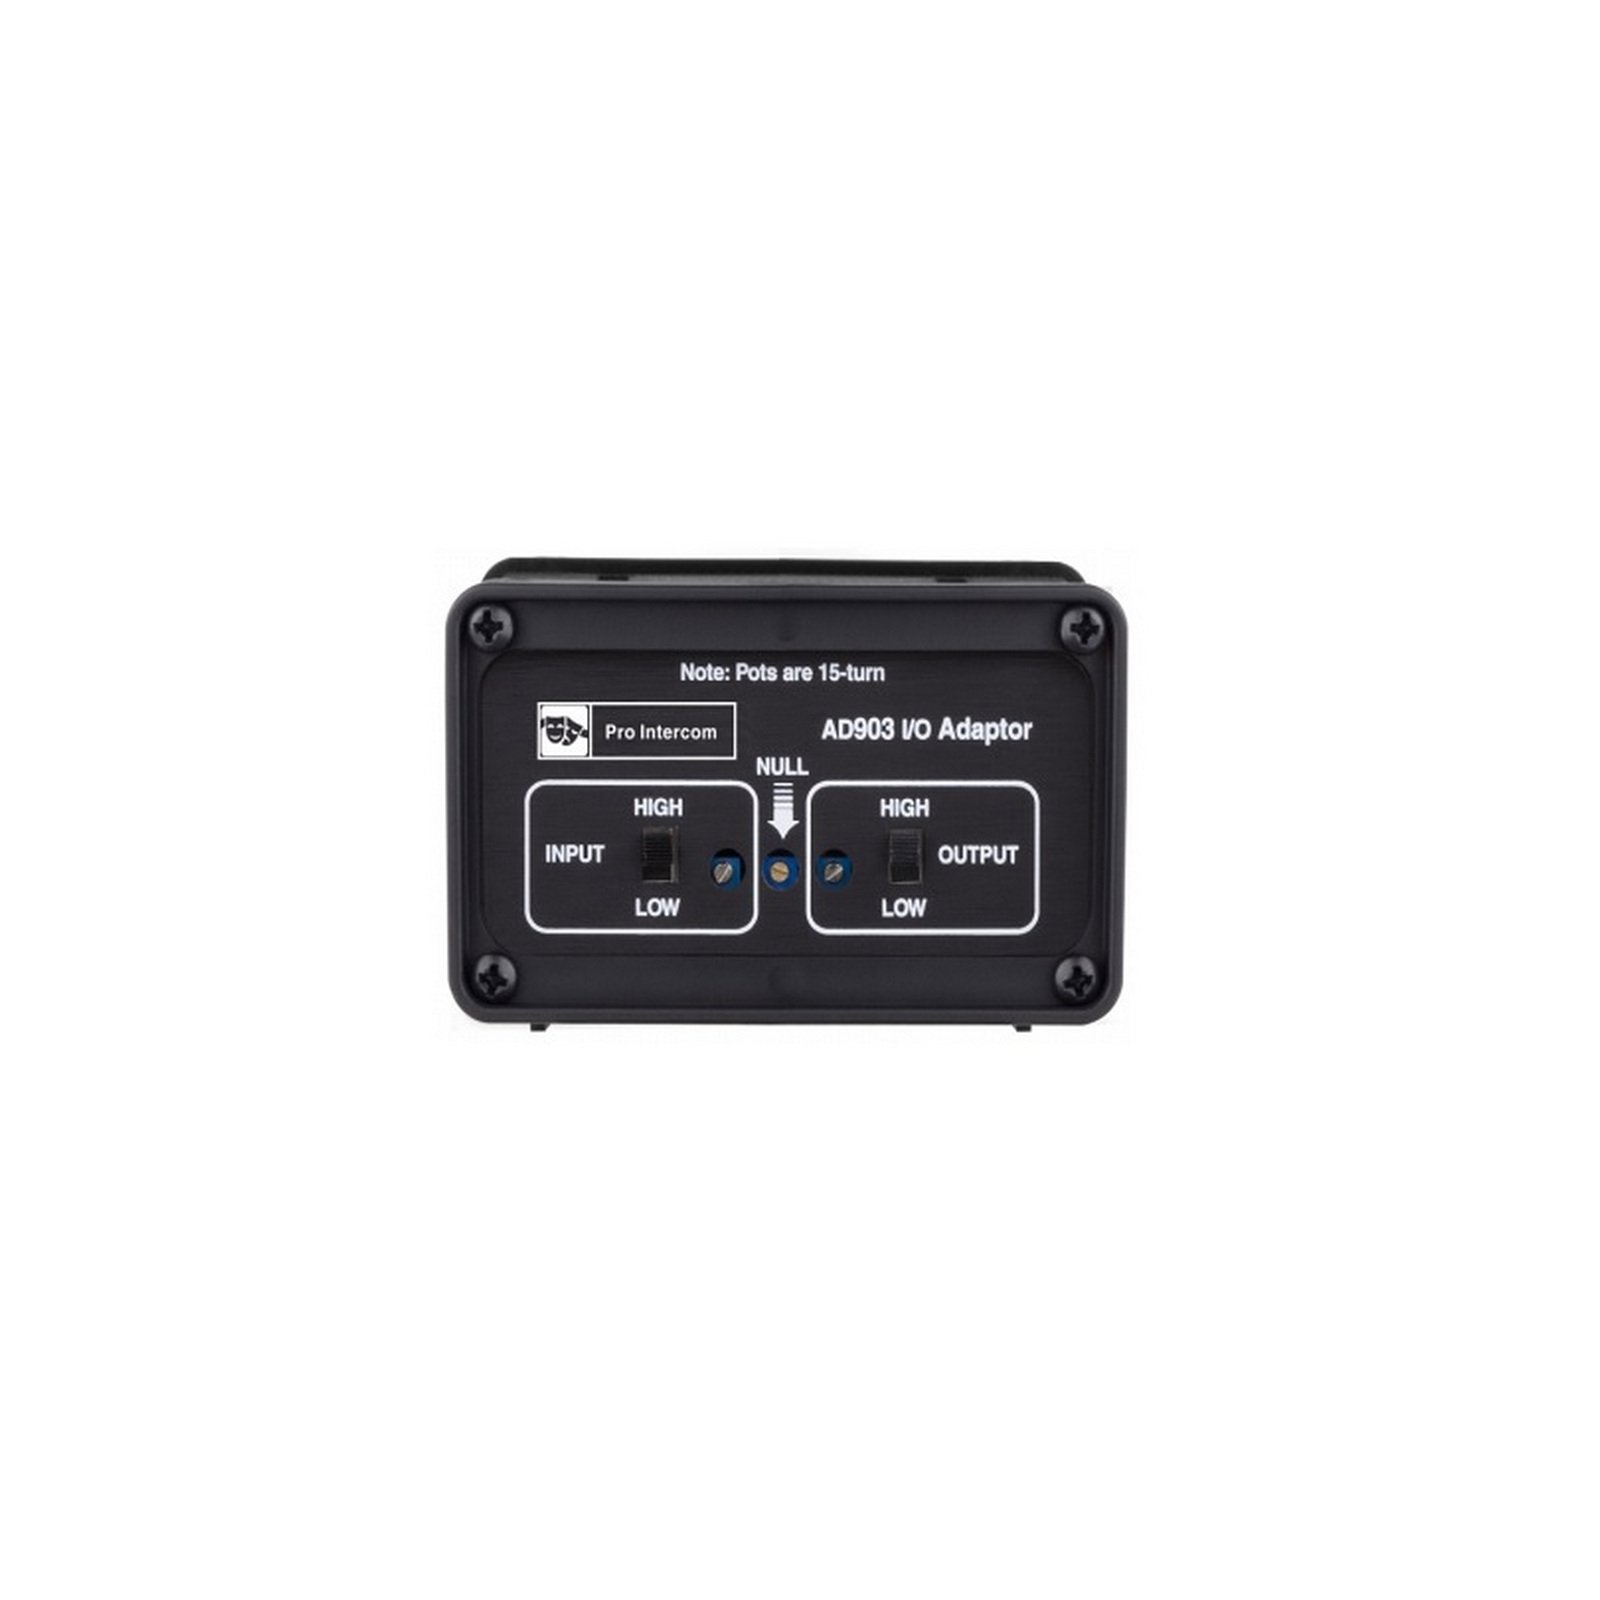 Pro Intercom AD903 | 2 to 4 Wire Active Transceiver Adapter by Pro Intercom